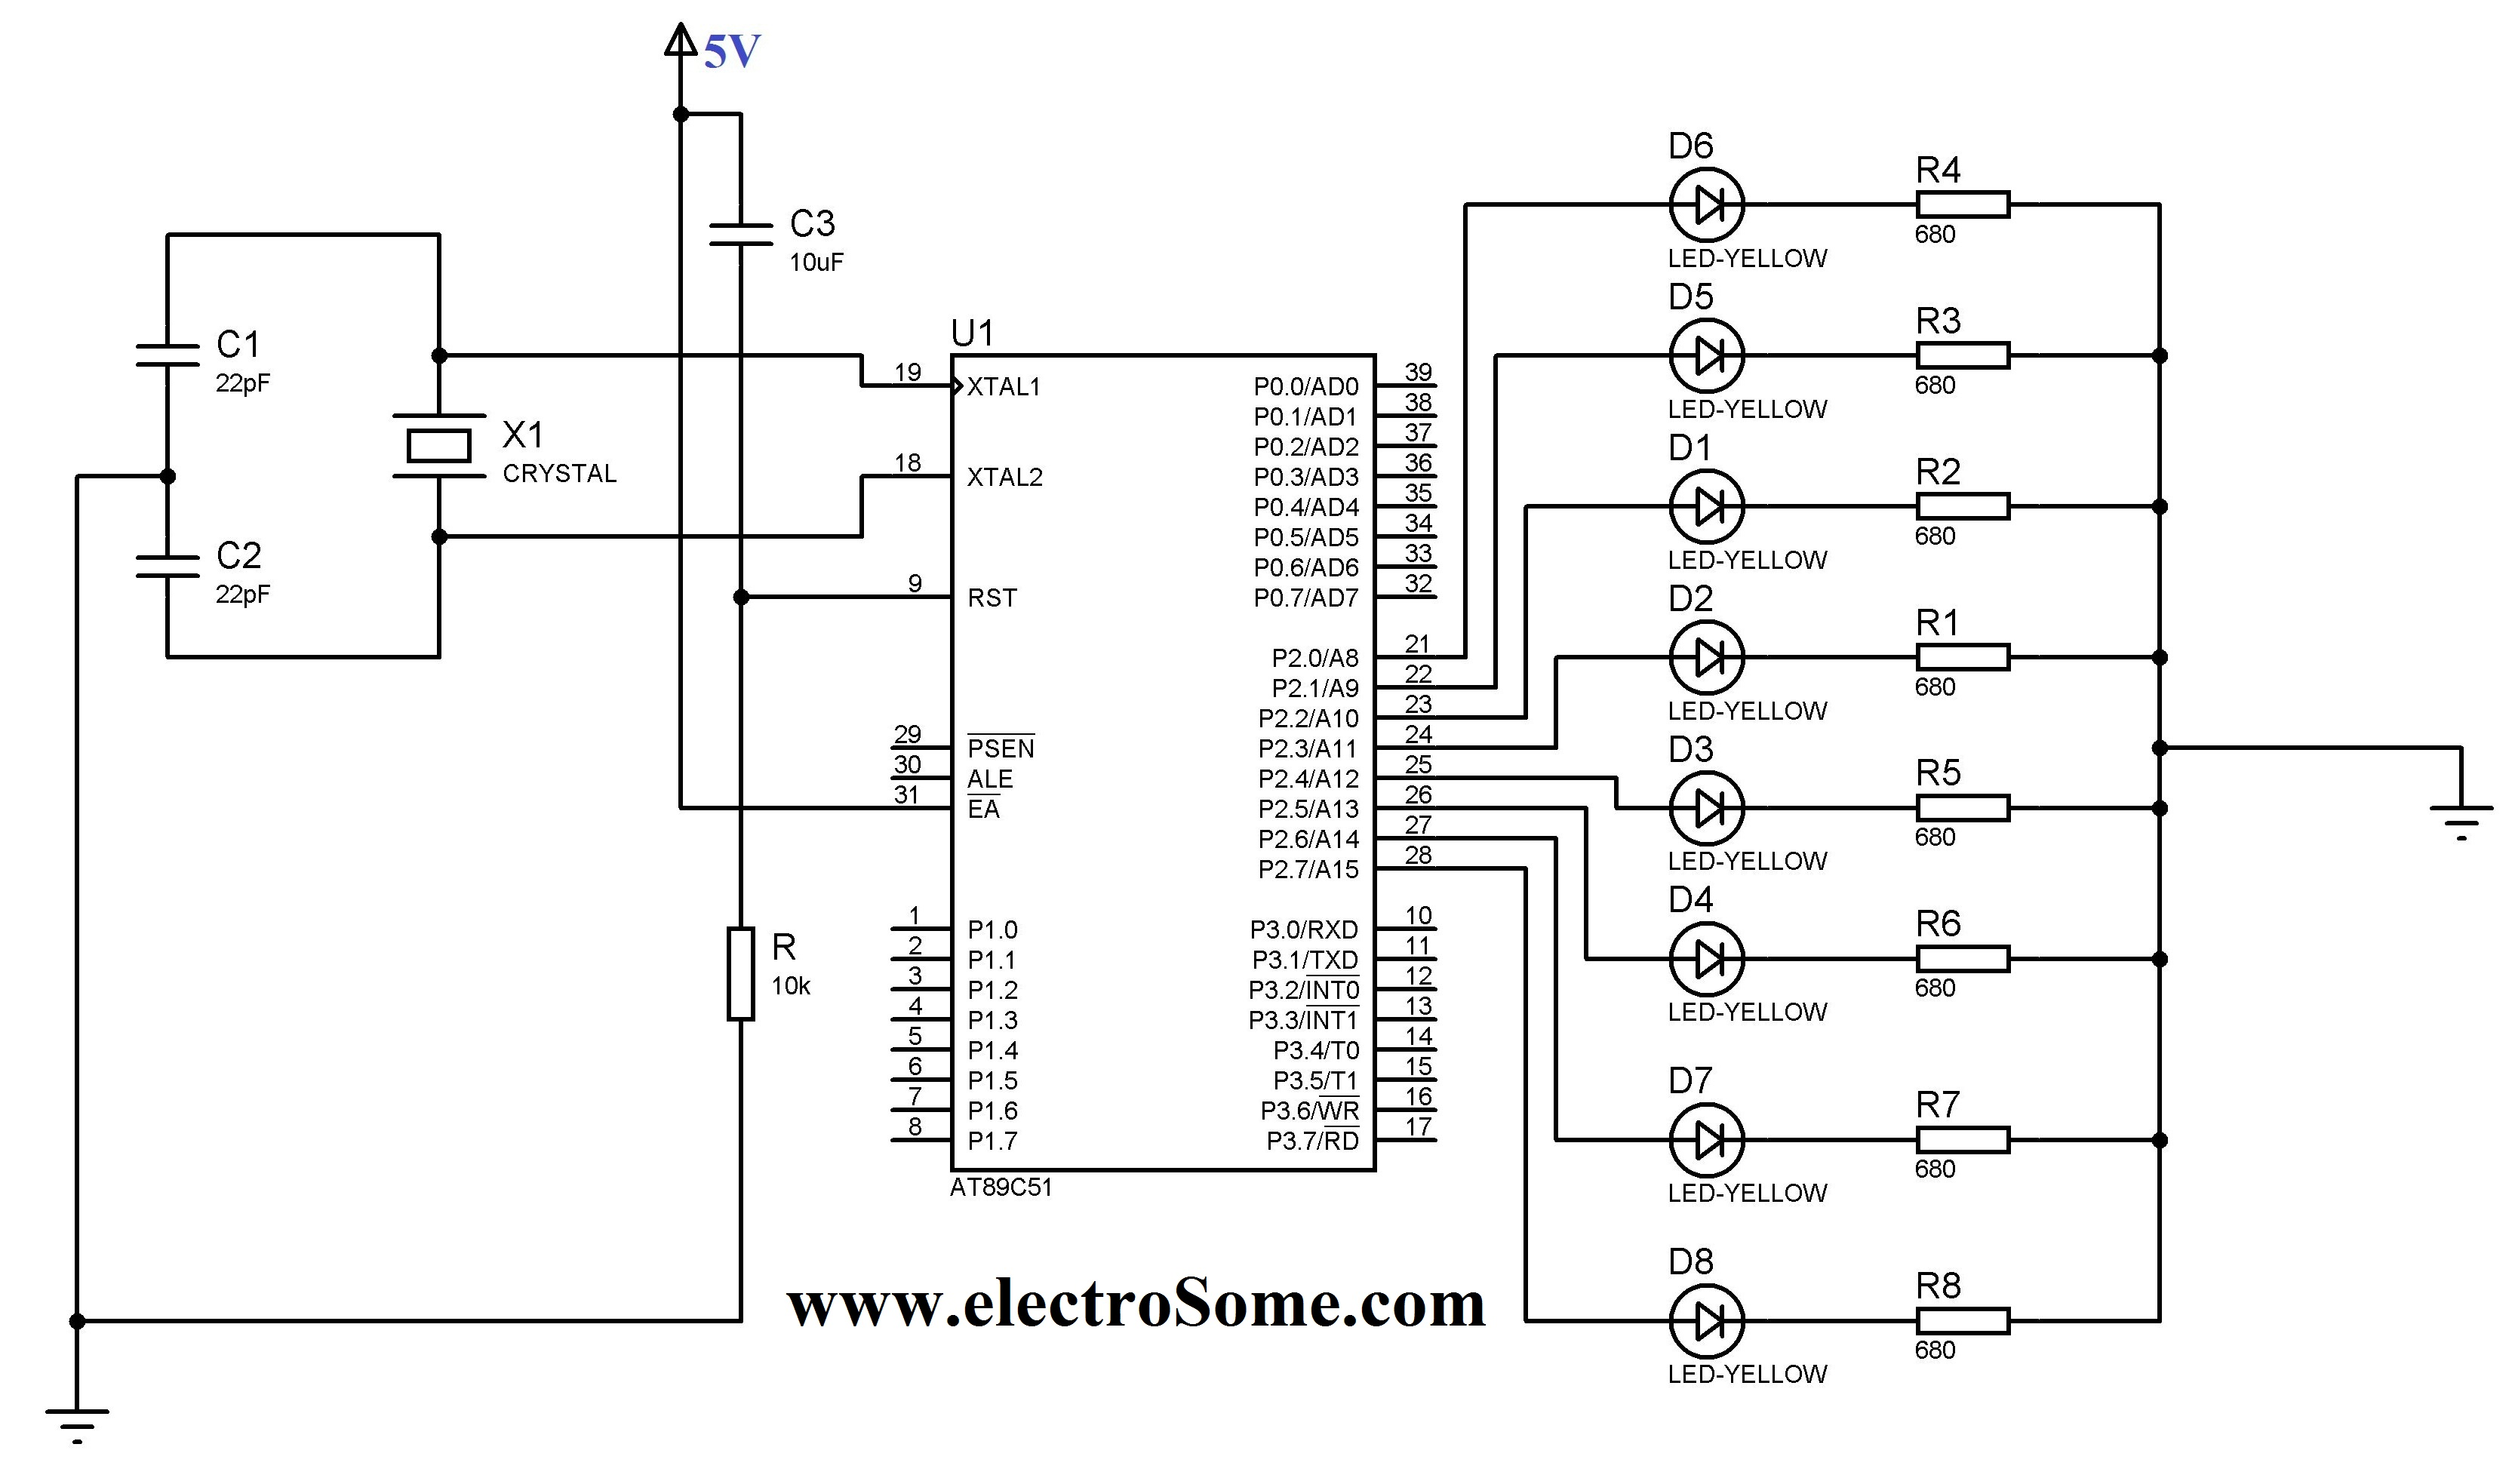 Gt Circuits Gt Led Blinking Microcontroller Keil C Tutorial At89c51 L